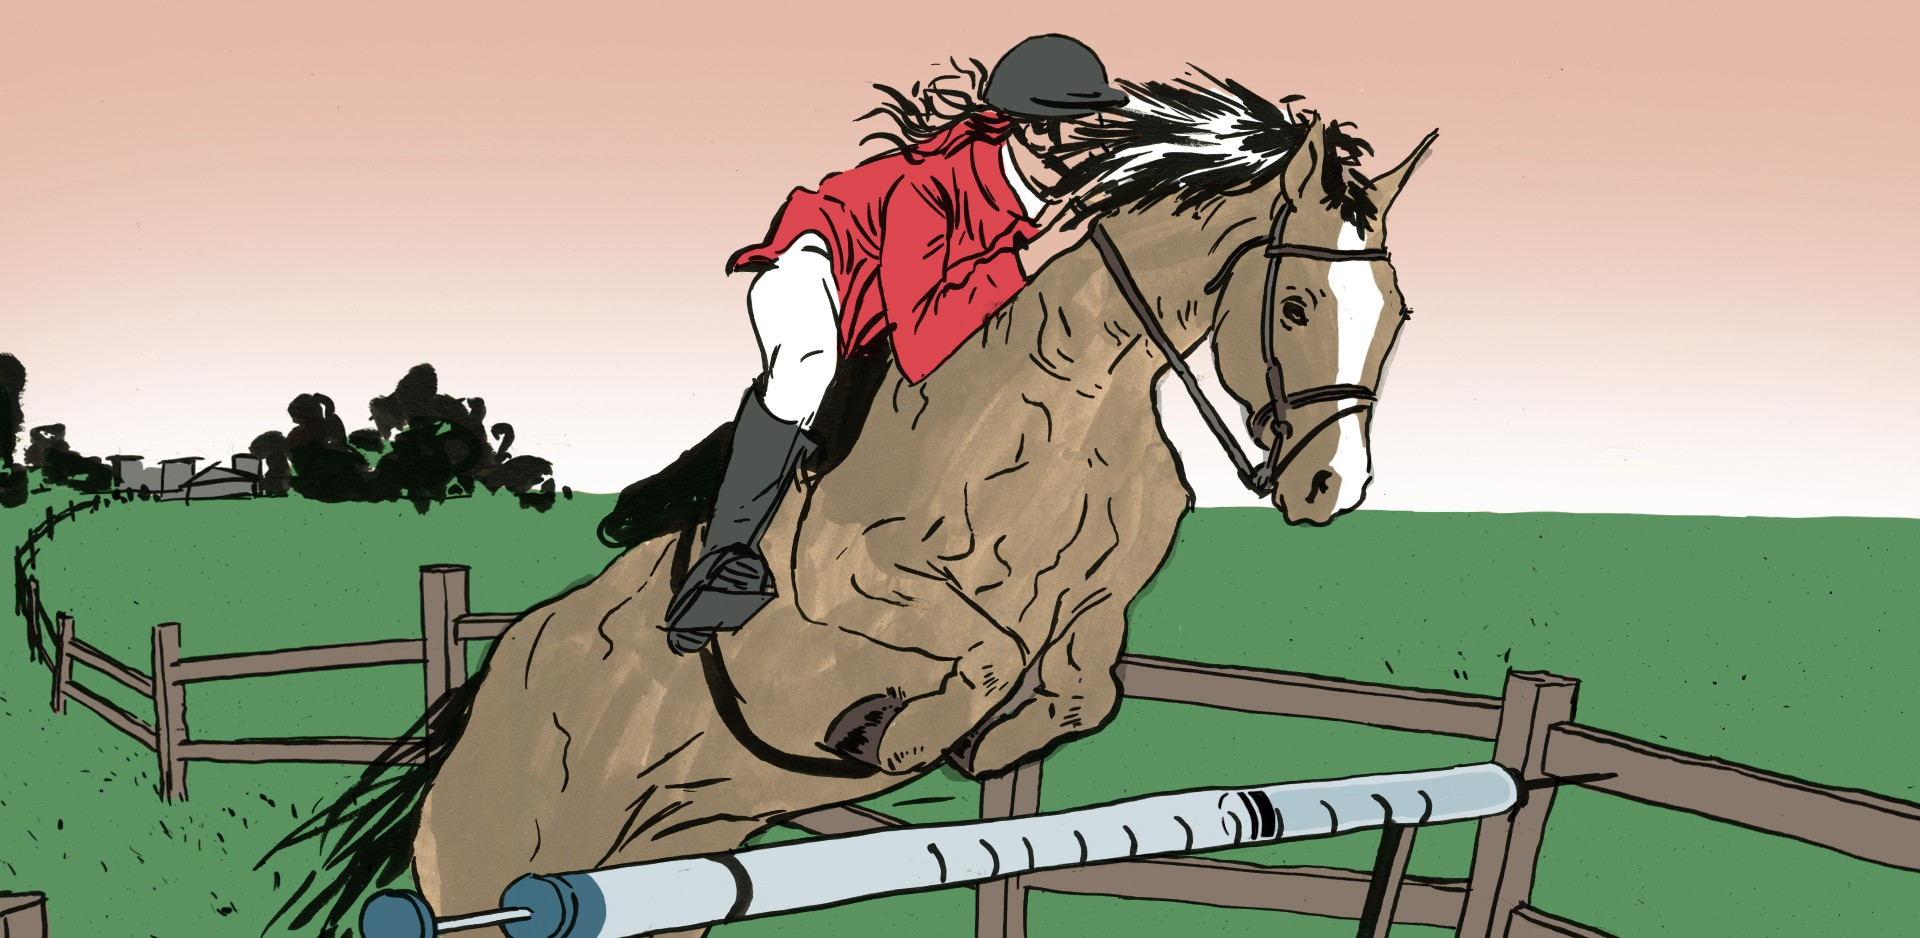 An illustration of a rider jumping a horse over a hurdle that looks like a syringe